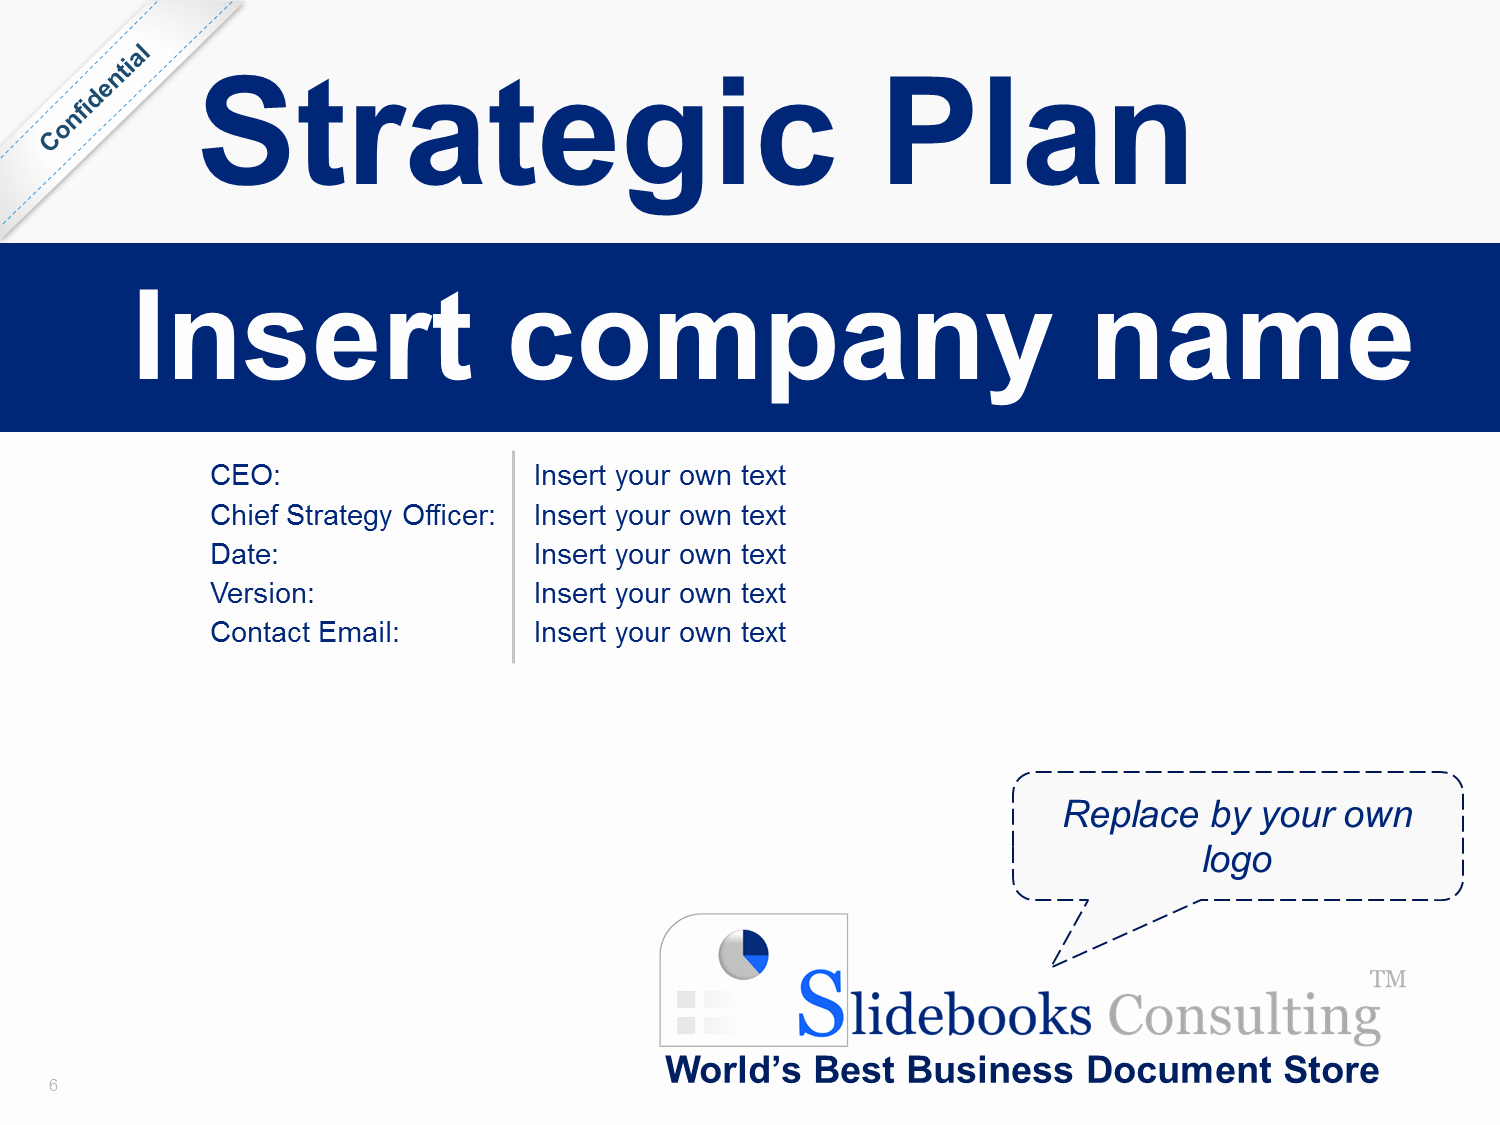 Strategic Plan Ppt Template Fresh Download A Simple Strategic Plan Template